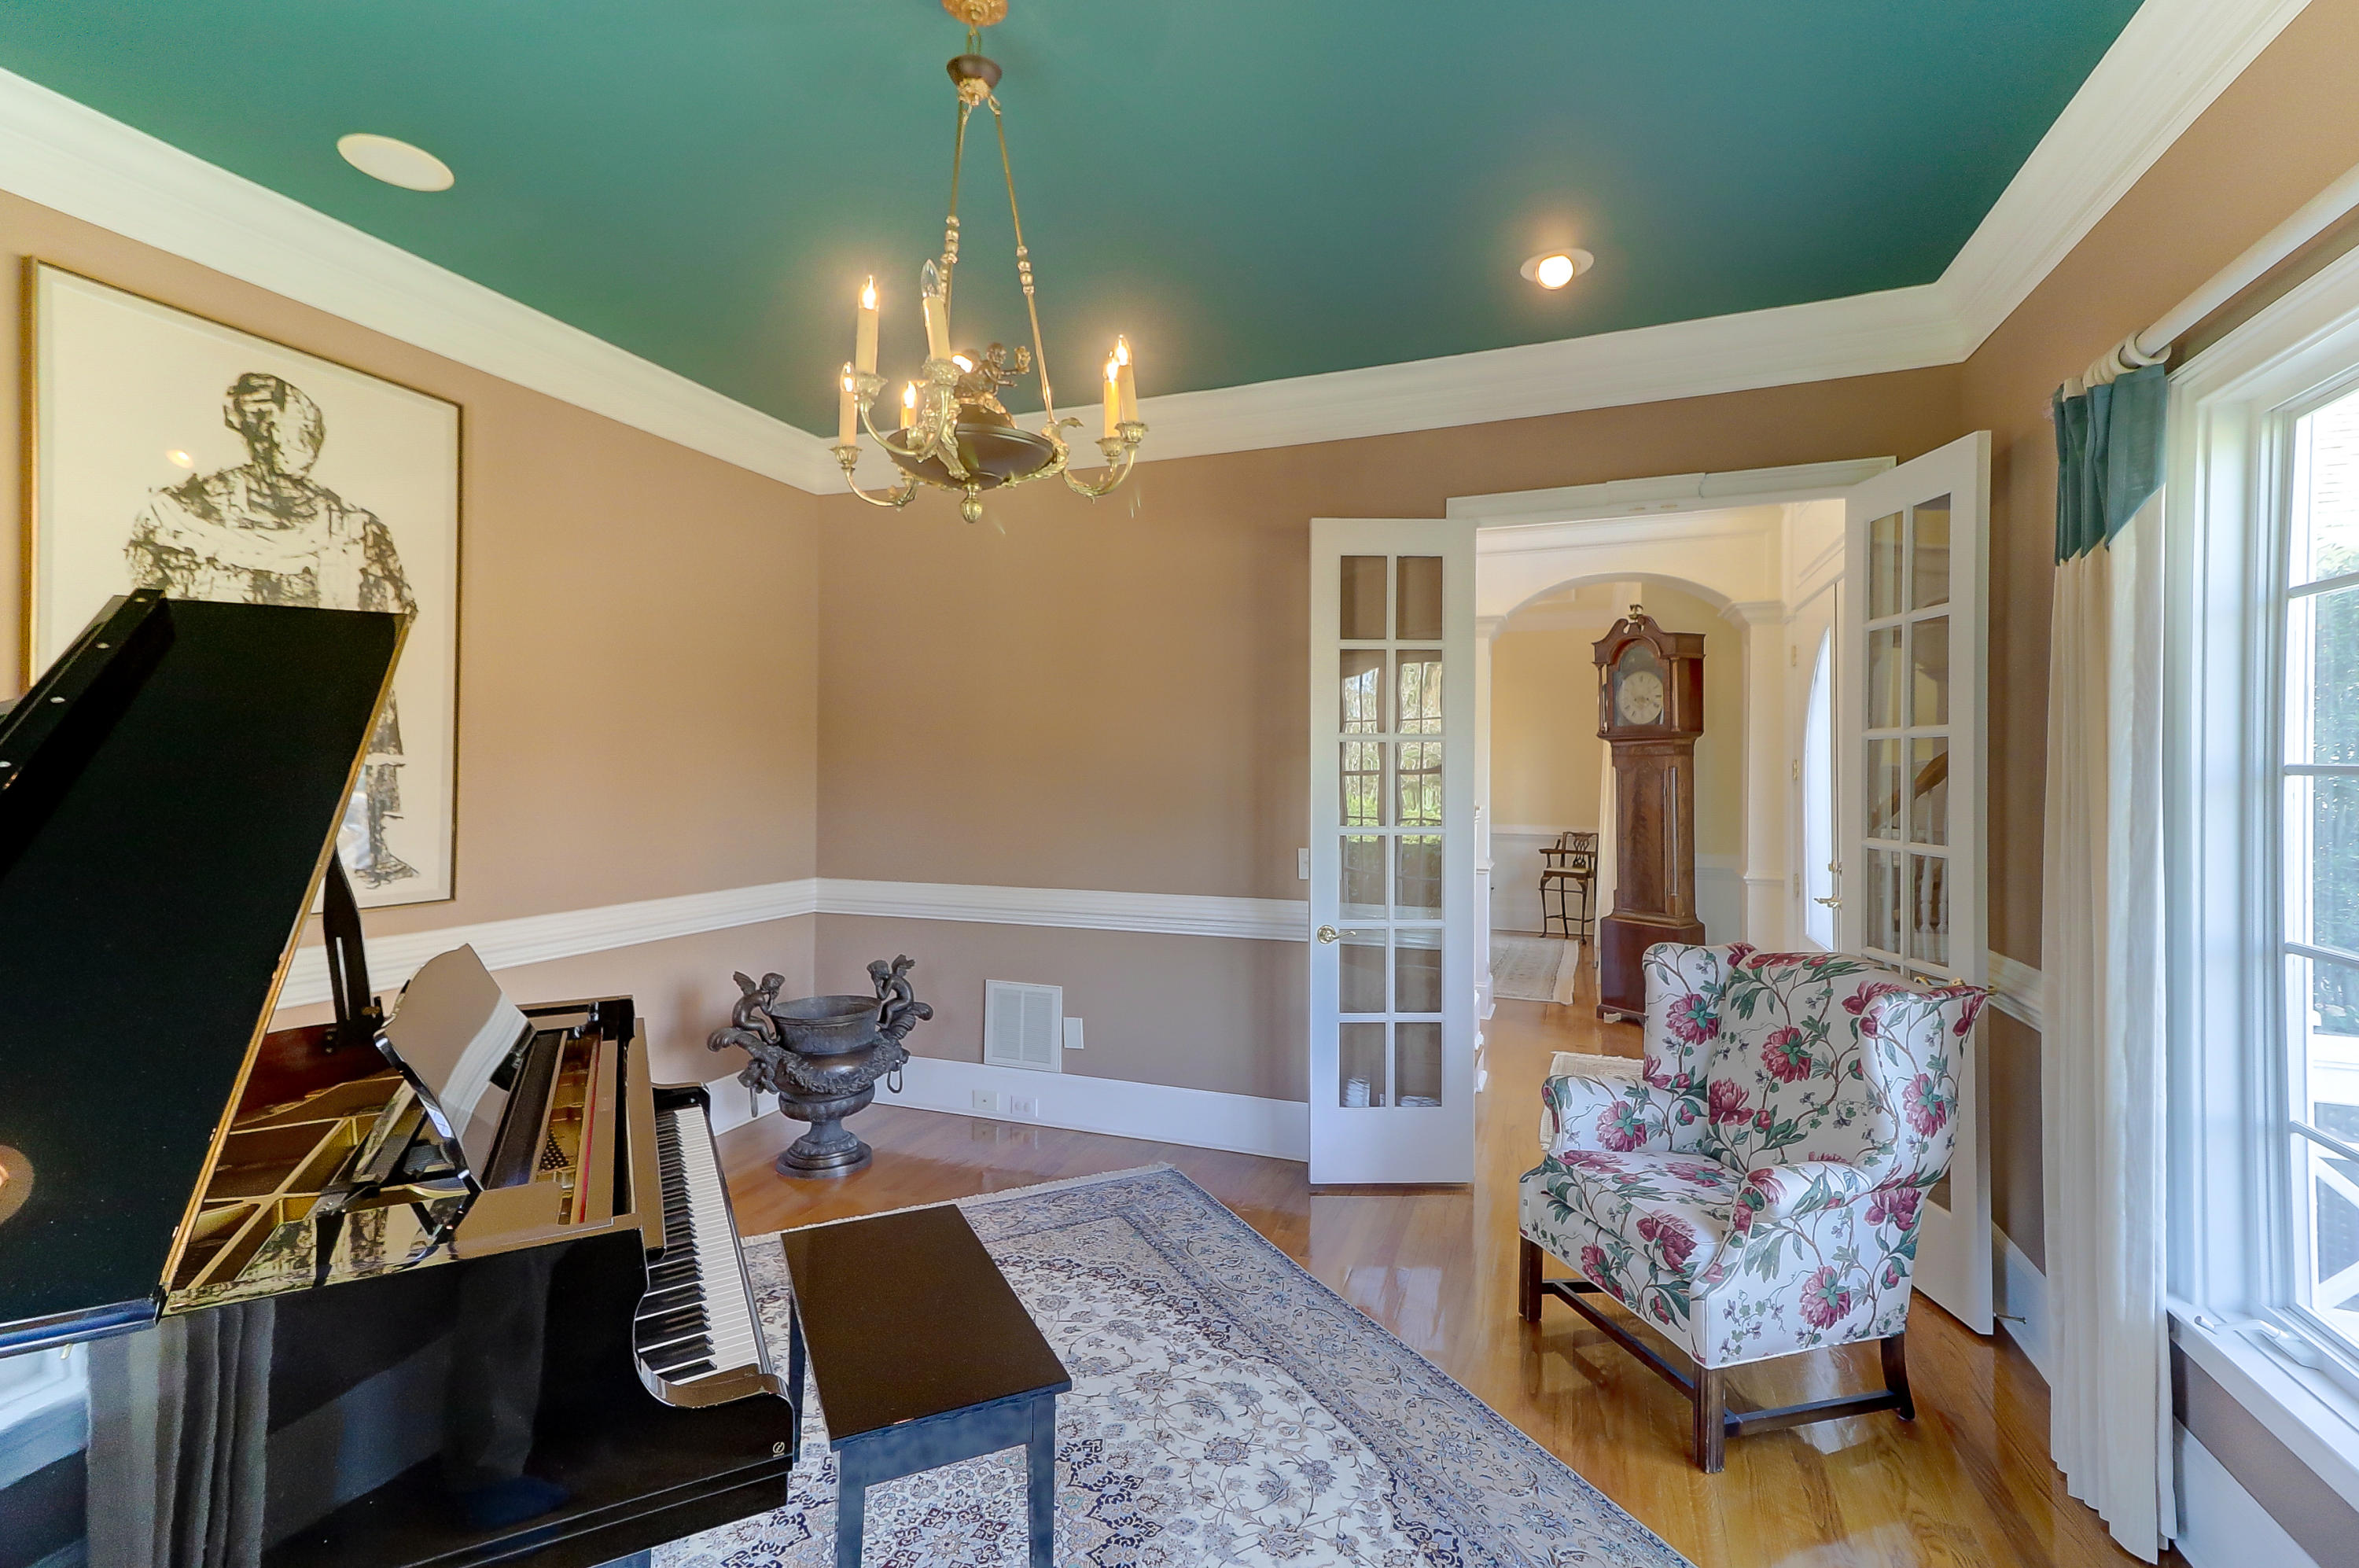 Dunes West Homes For Sale - 2019 Shell Ring, Mount Pleasant, SC - 29